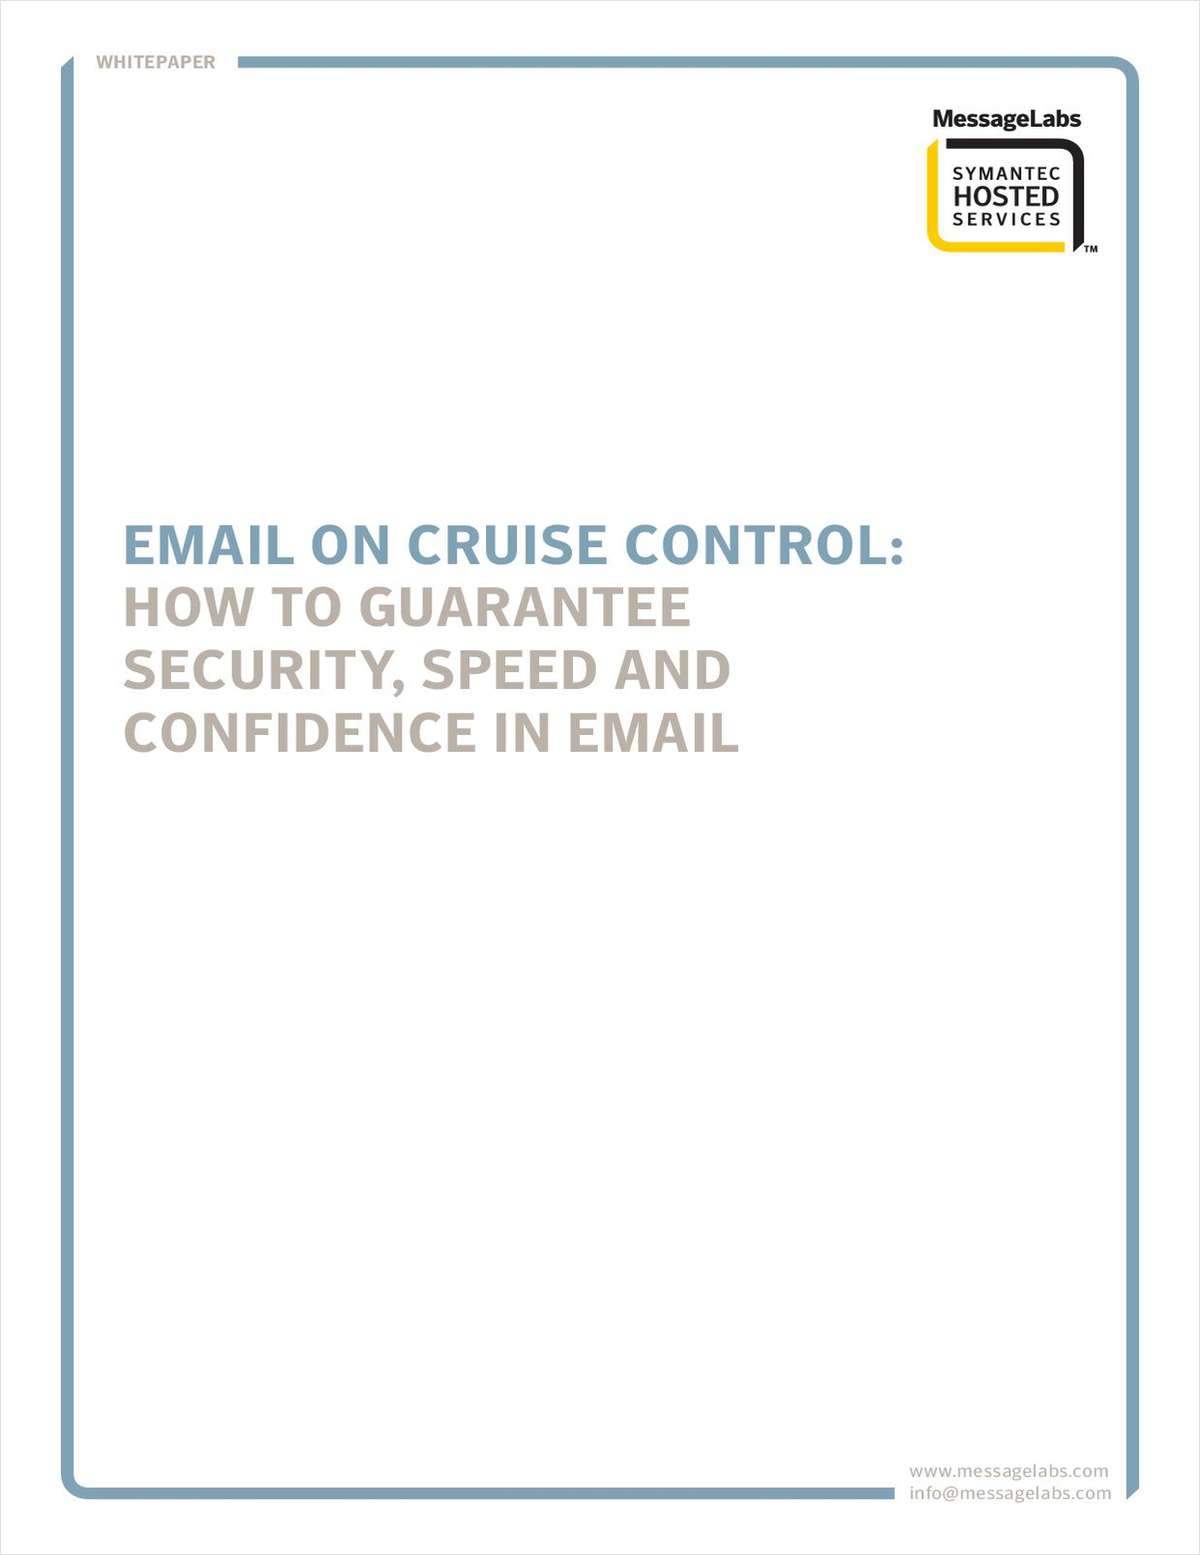 Email on Cruise Control: How to Guarantee Security, Speed and Confidence in Email